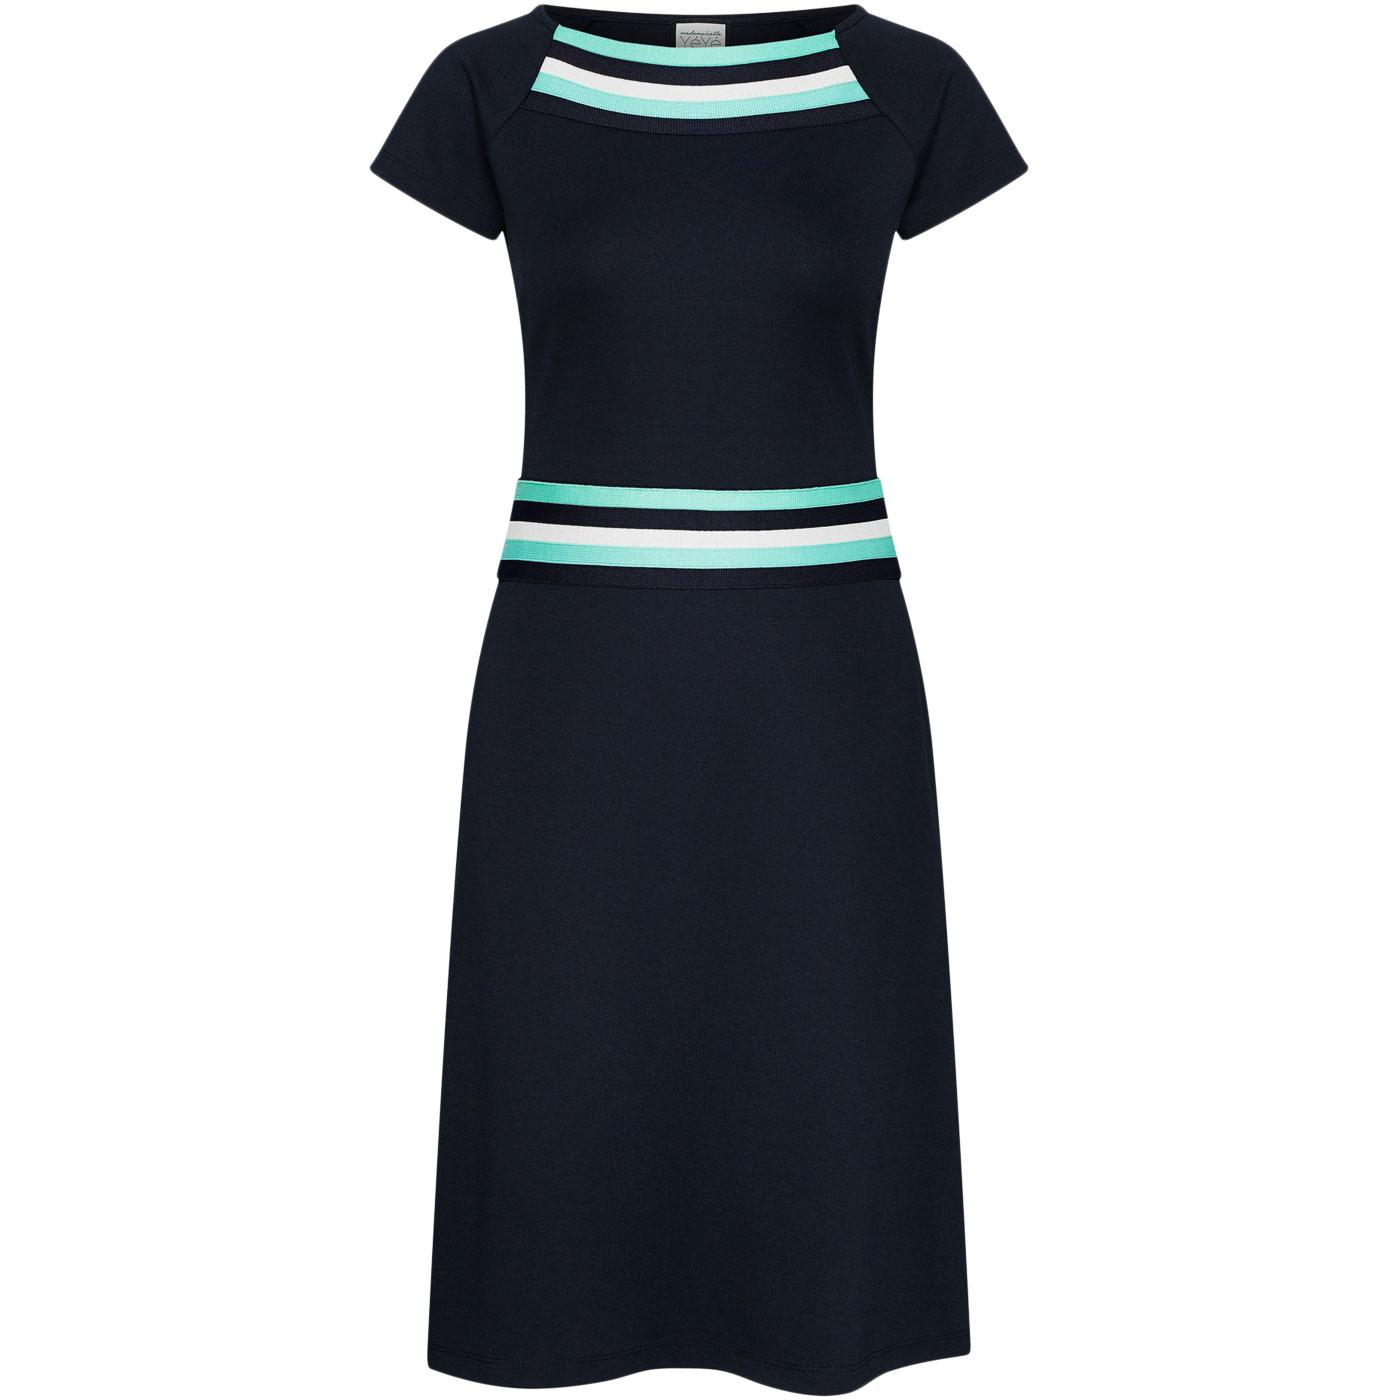 A Trip To Rome MADEMOISELLE YEYE 60s Mod Dress